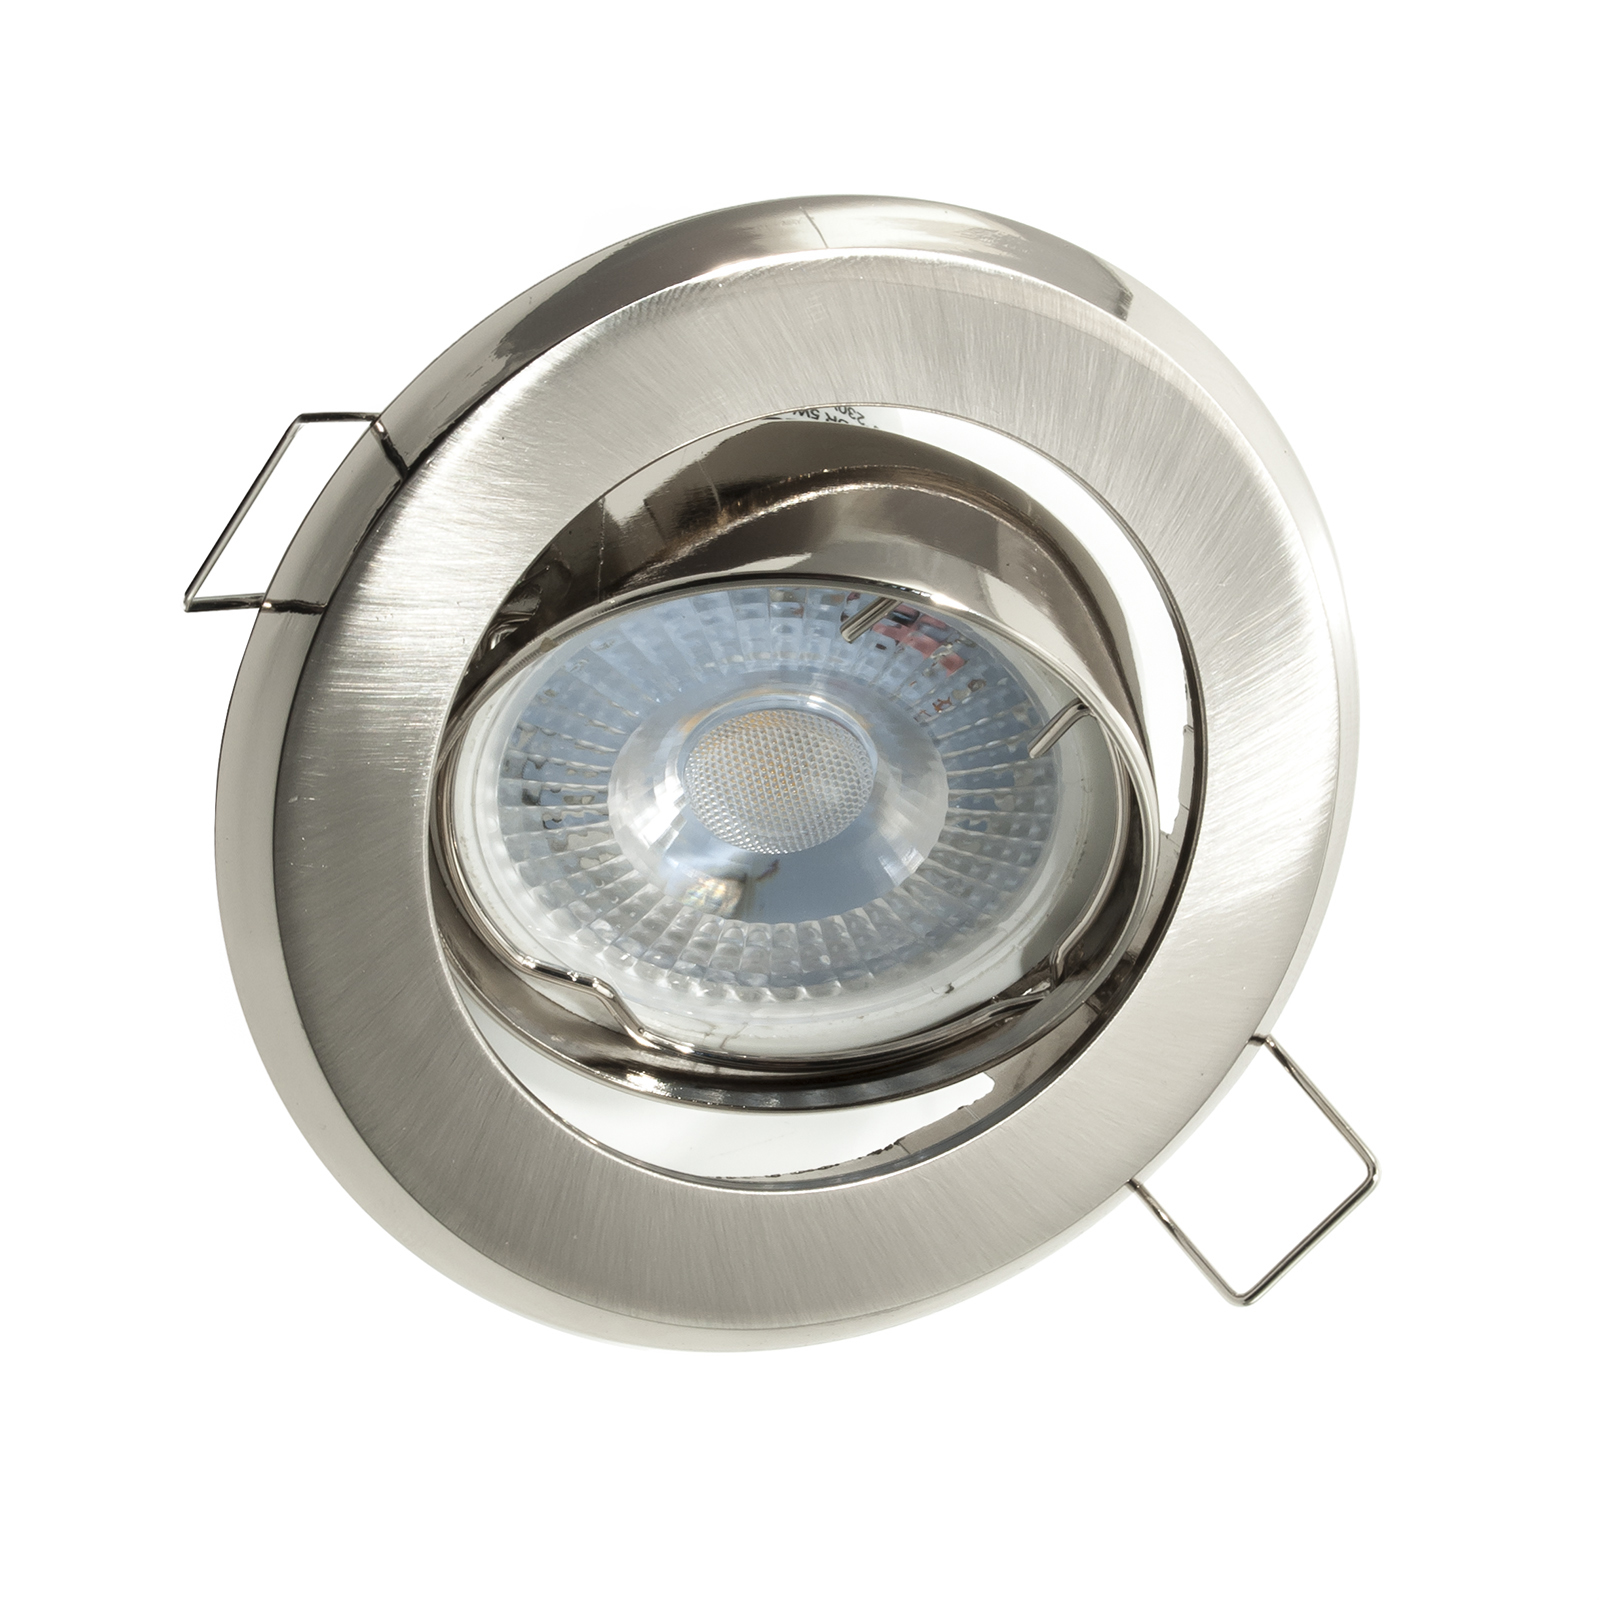 Spotlight adjustable LED 5W recessed round silver corner 38 GU10 hole 7cm 220V